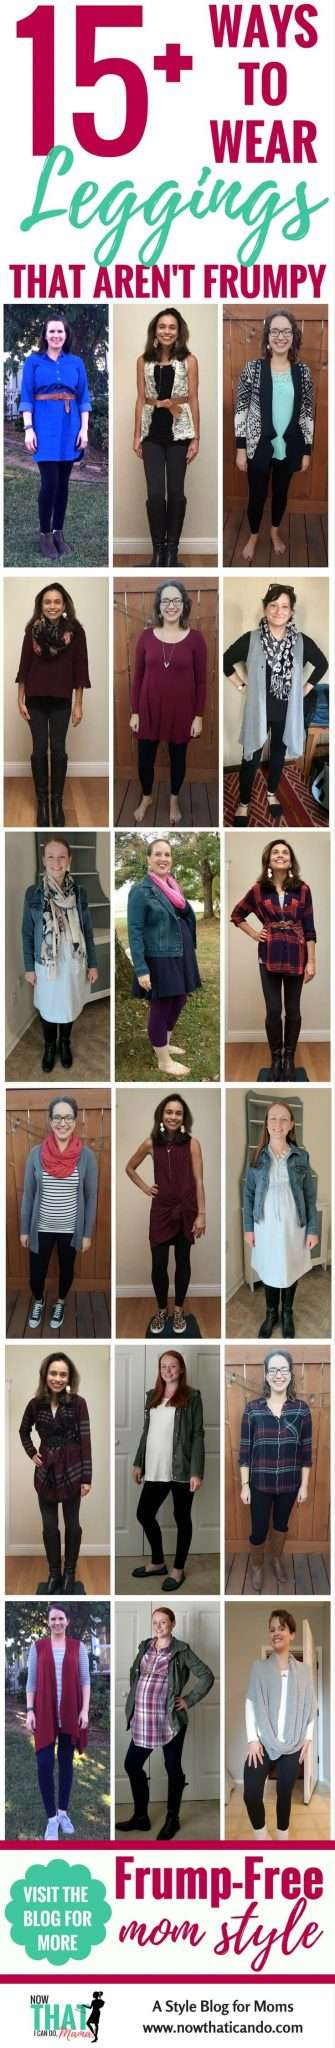 Having a hard time styling your #leggings? Moms just like you modeling how to wear leggings - non-frumpy, mom friendly, cute, chic fashion! #mom #fashion #outfits #tips #ideas #easy #clothes #style